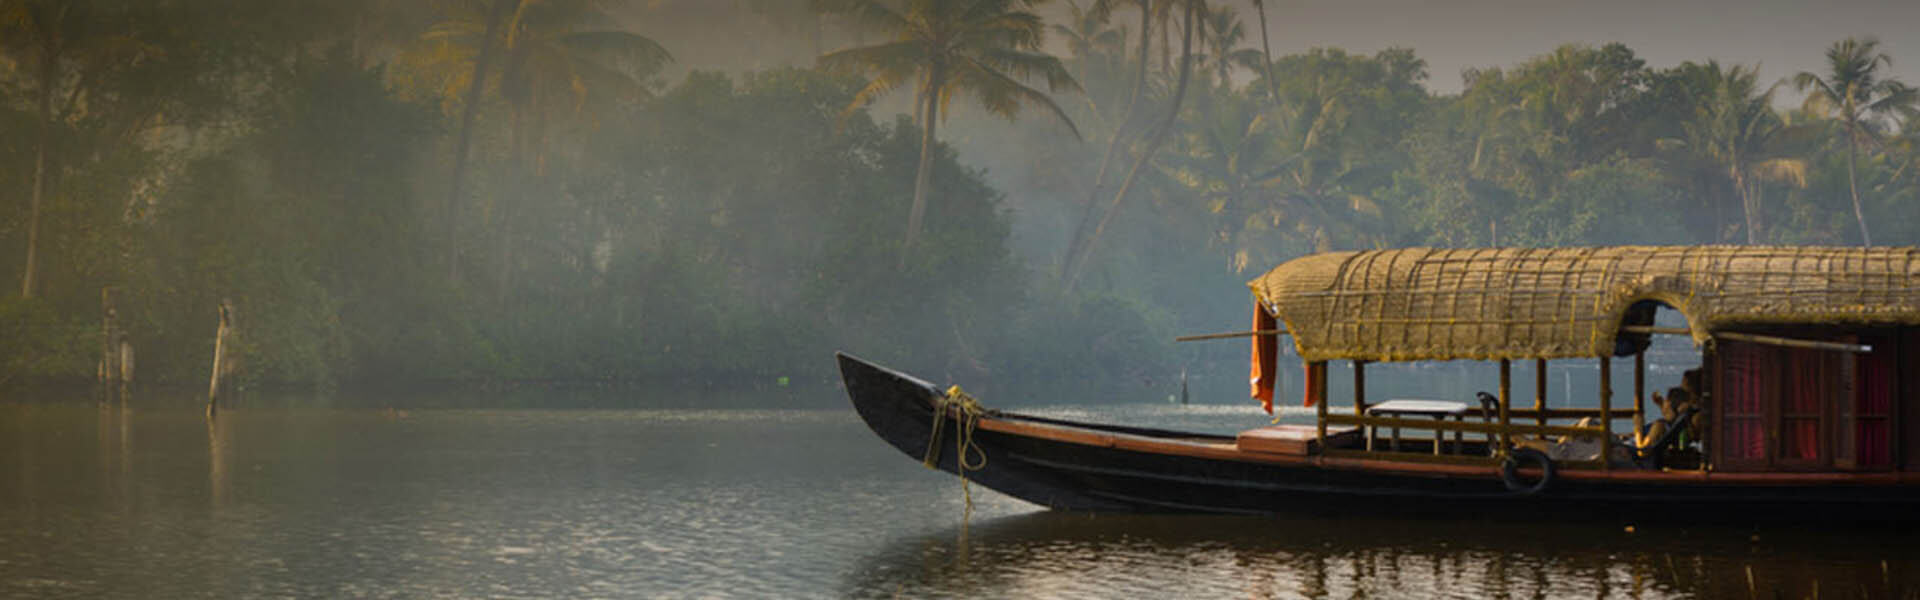 The Spice Route of Kerala,kerala tourism,india attractions,india tour,south india